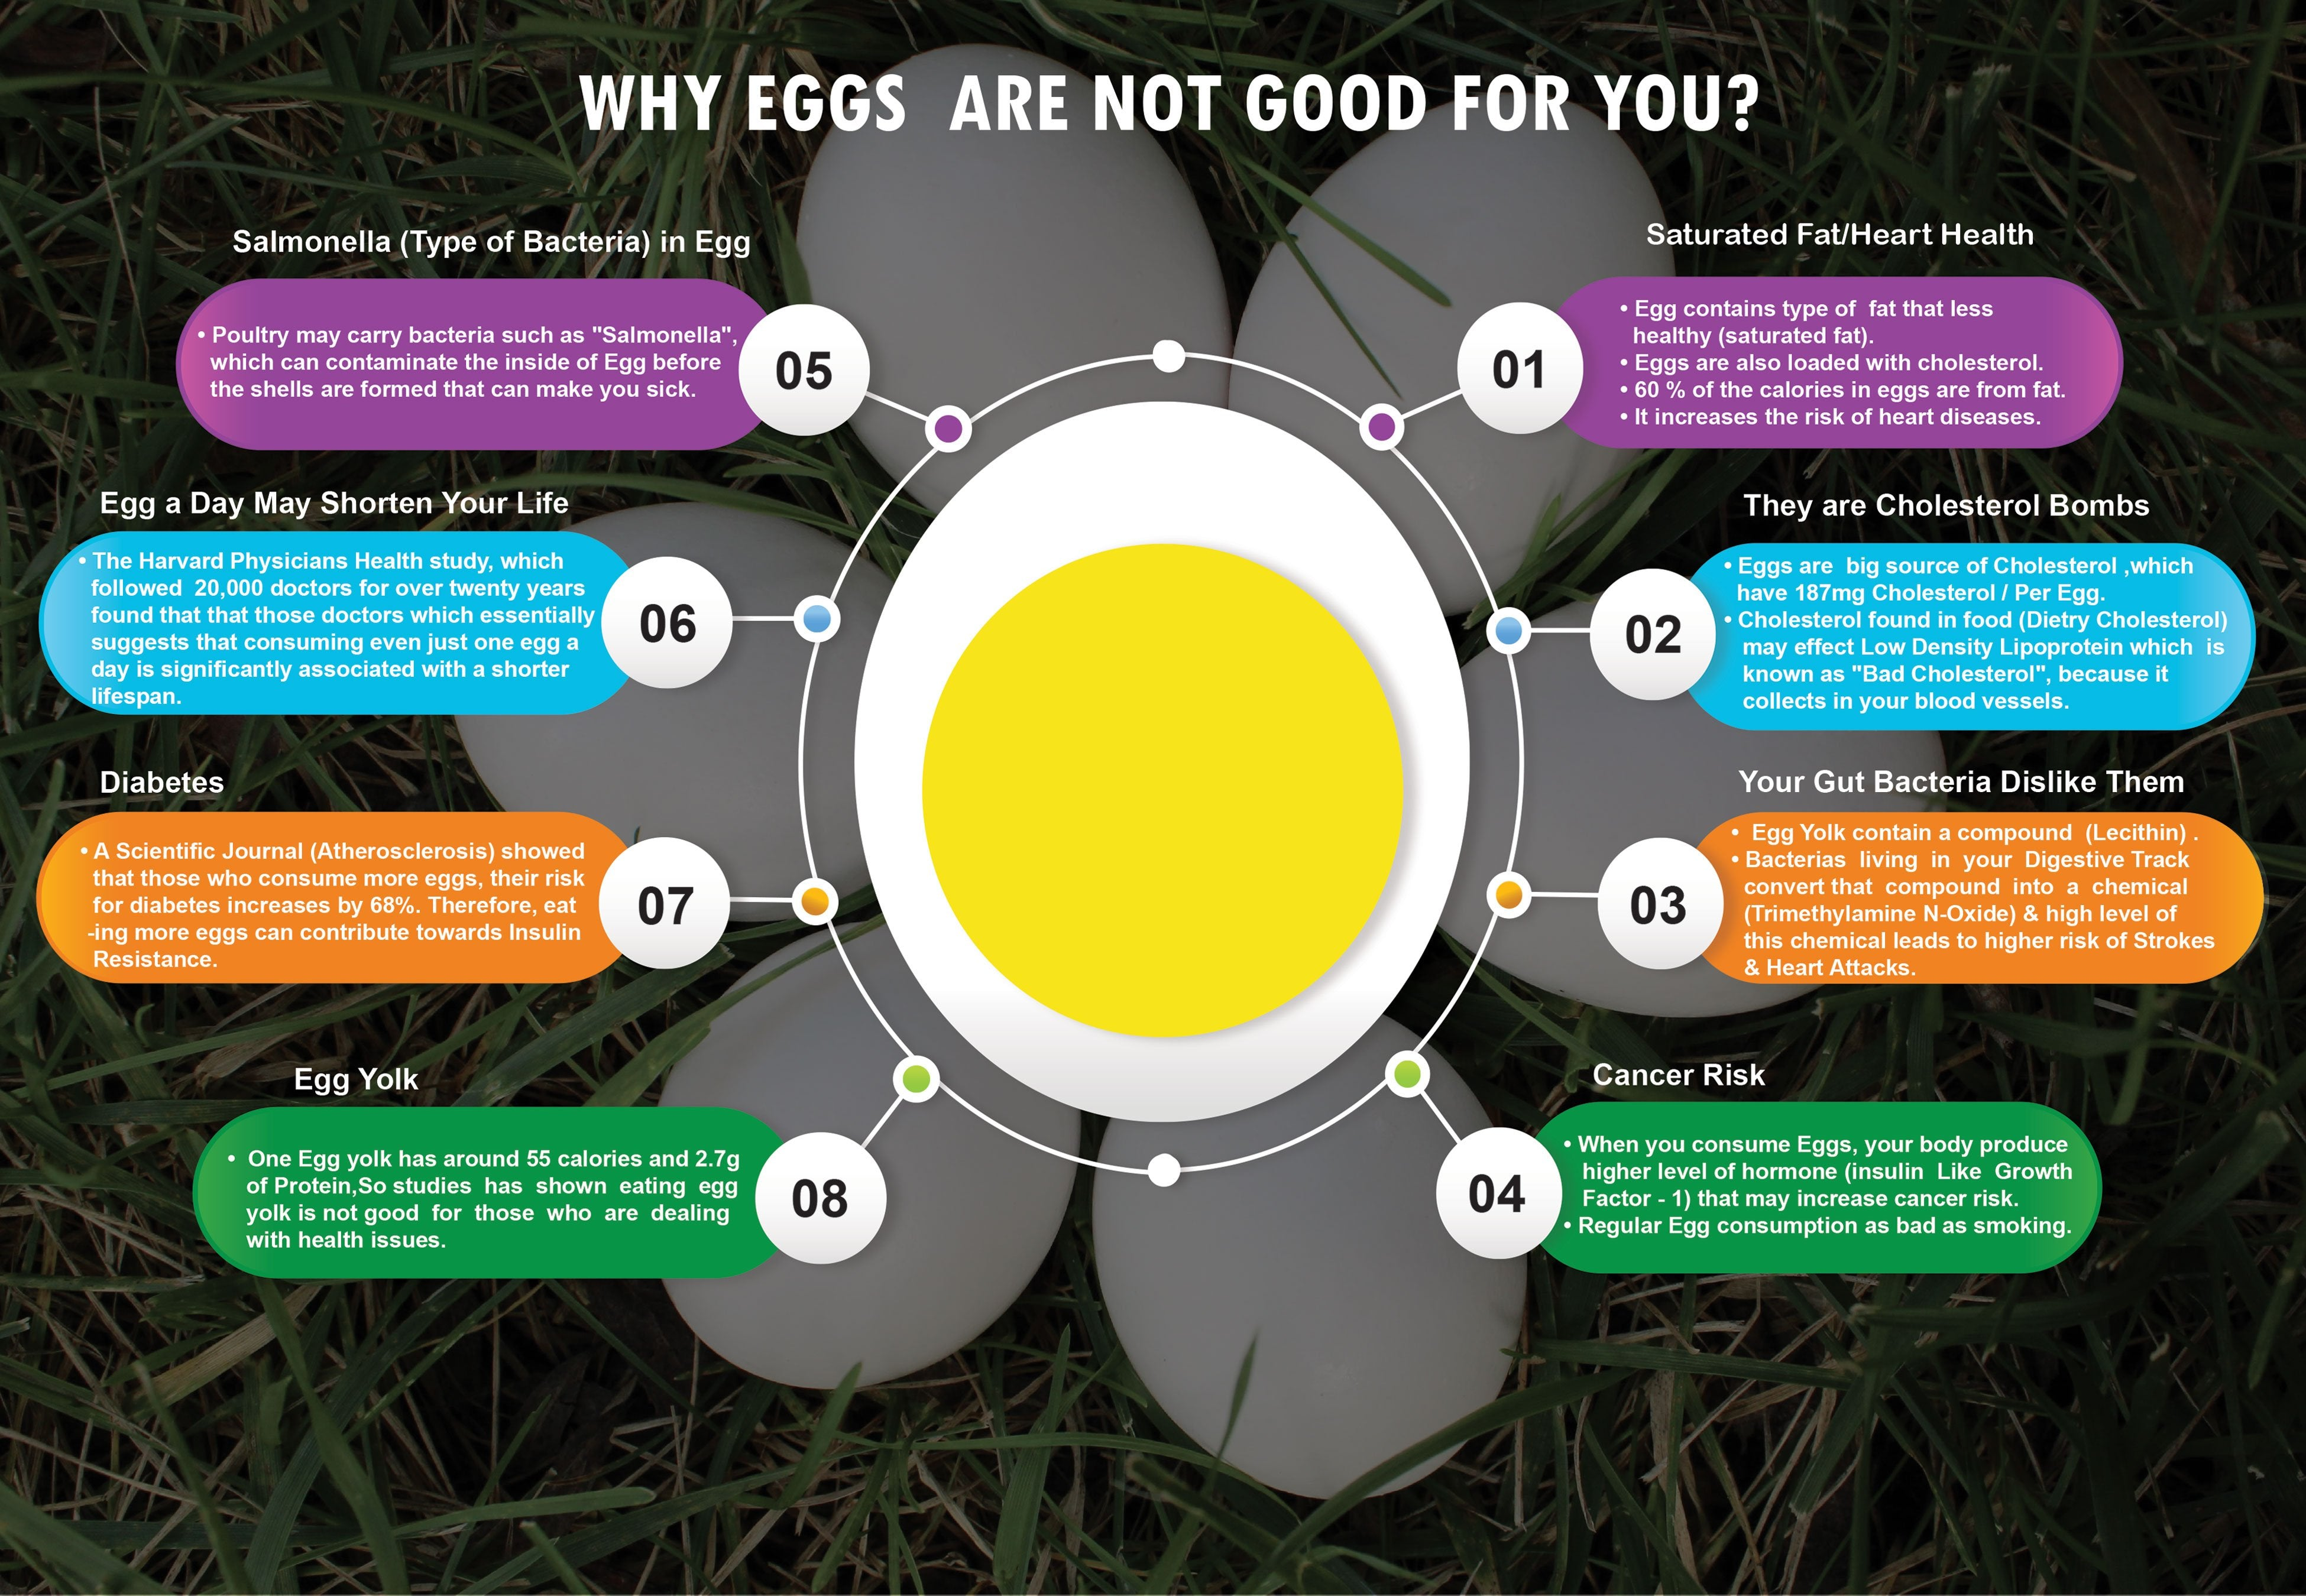 Research on Eggs being bad for health